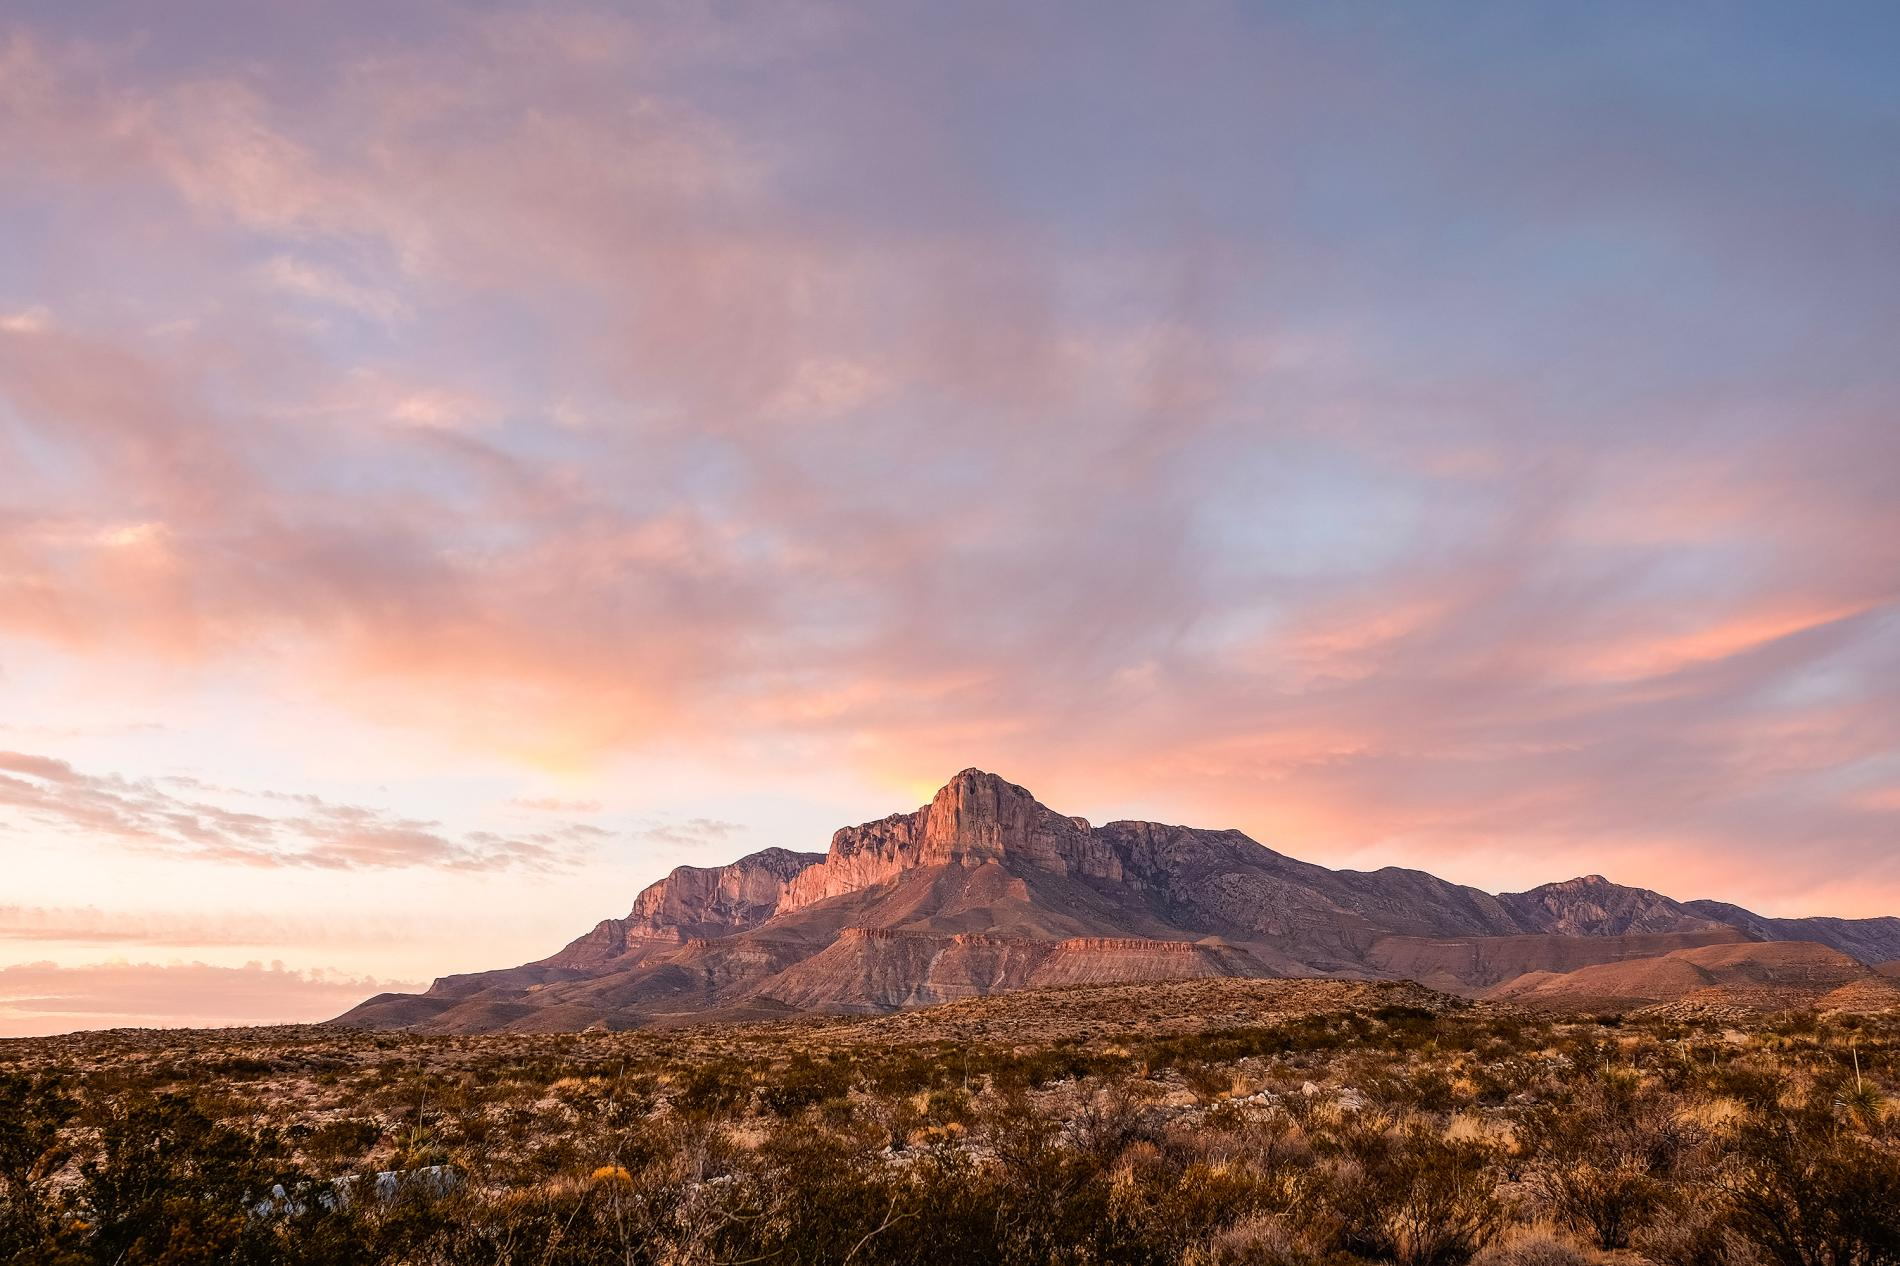 guadalupe-mountains-national-park-mountain-sunset.adapt.1900.1.jpg